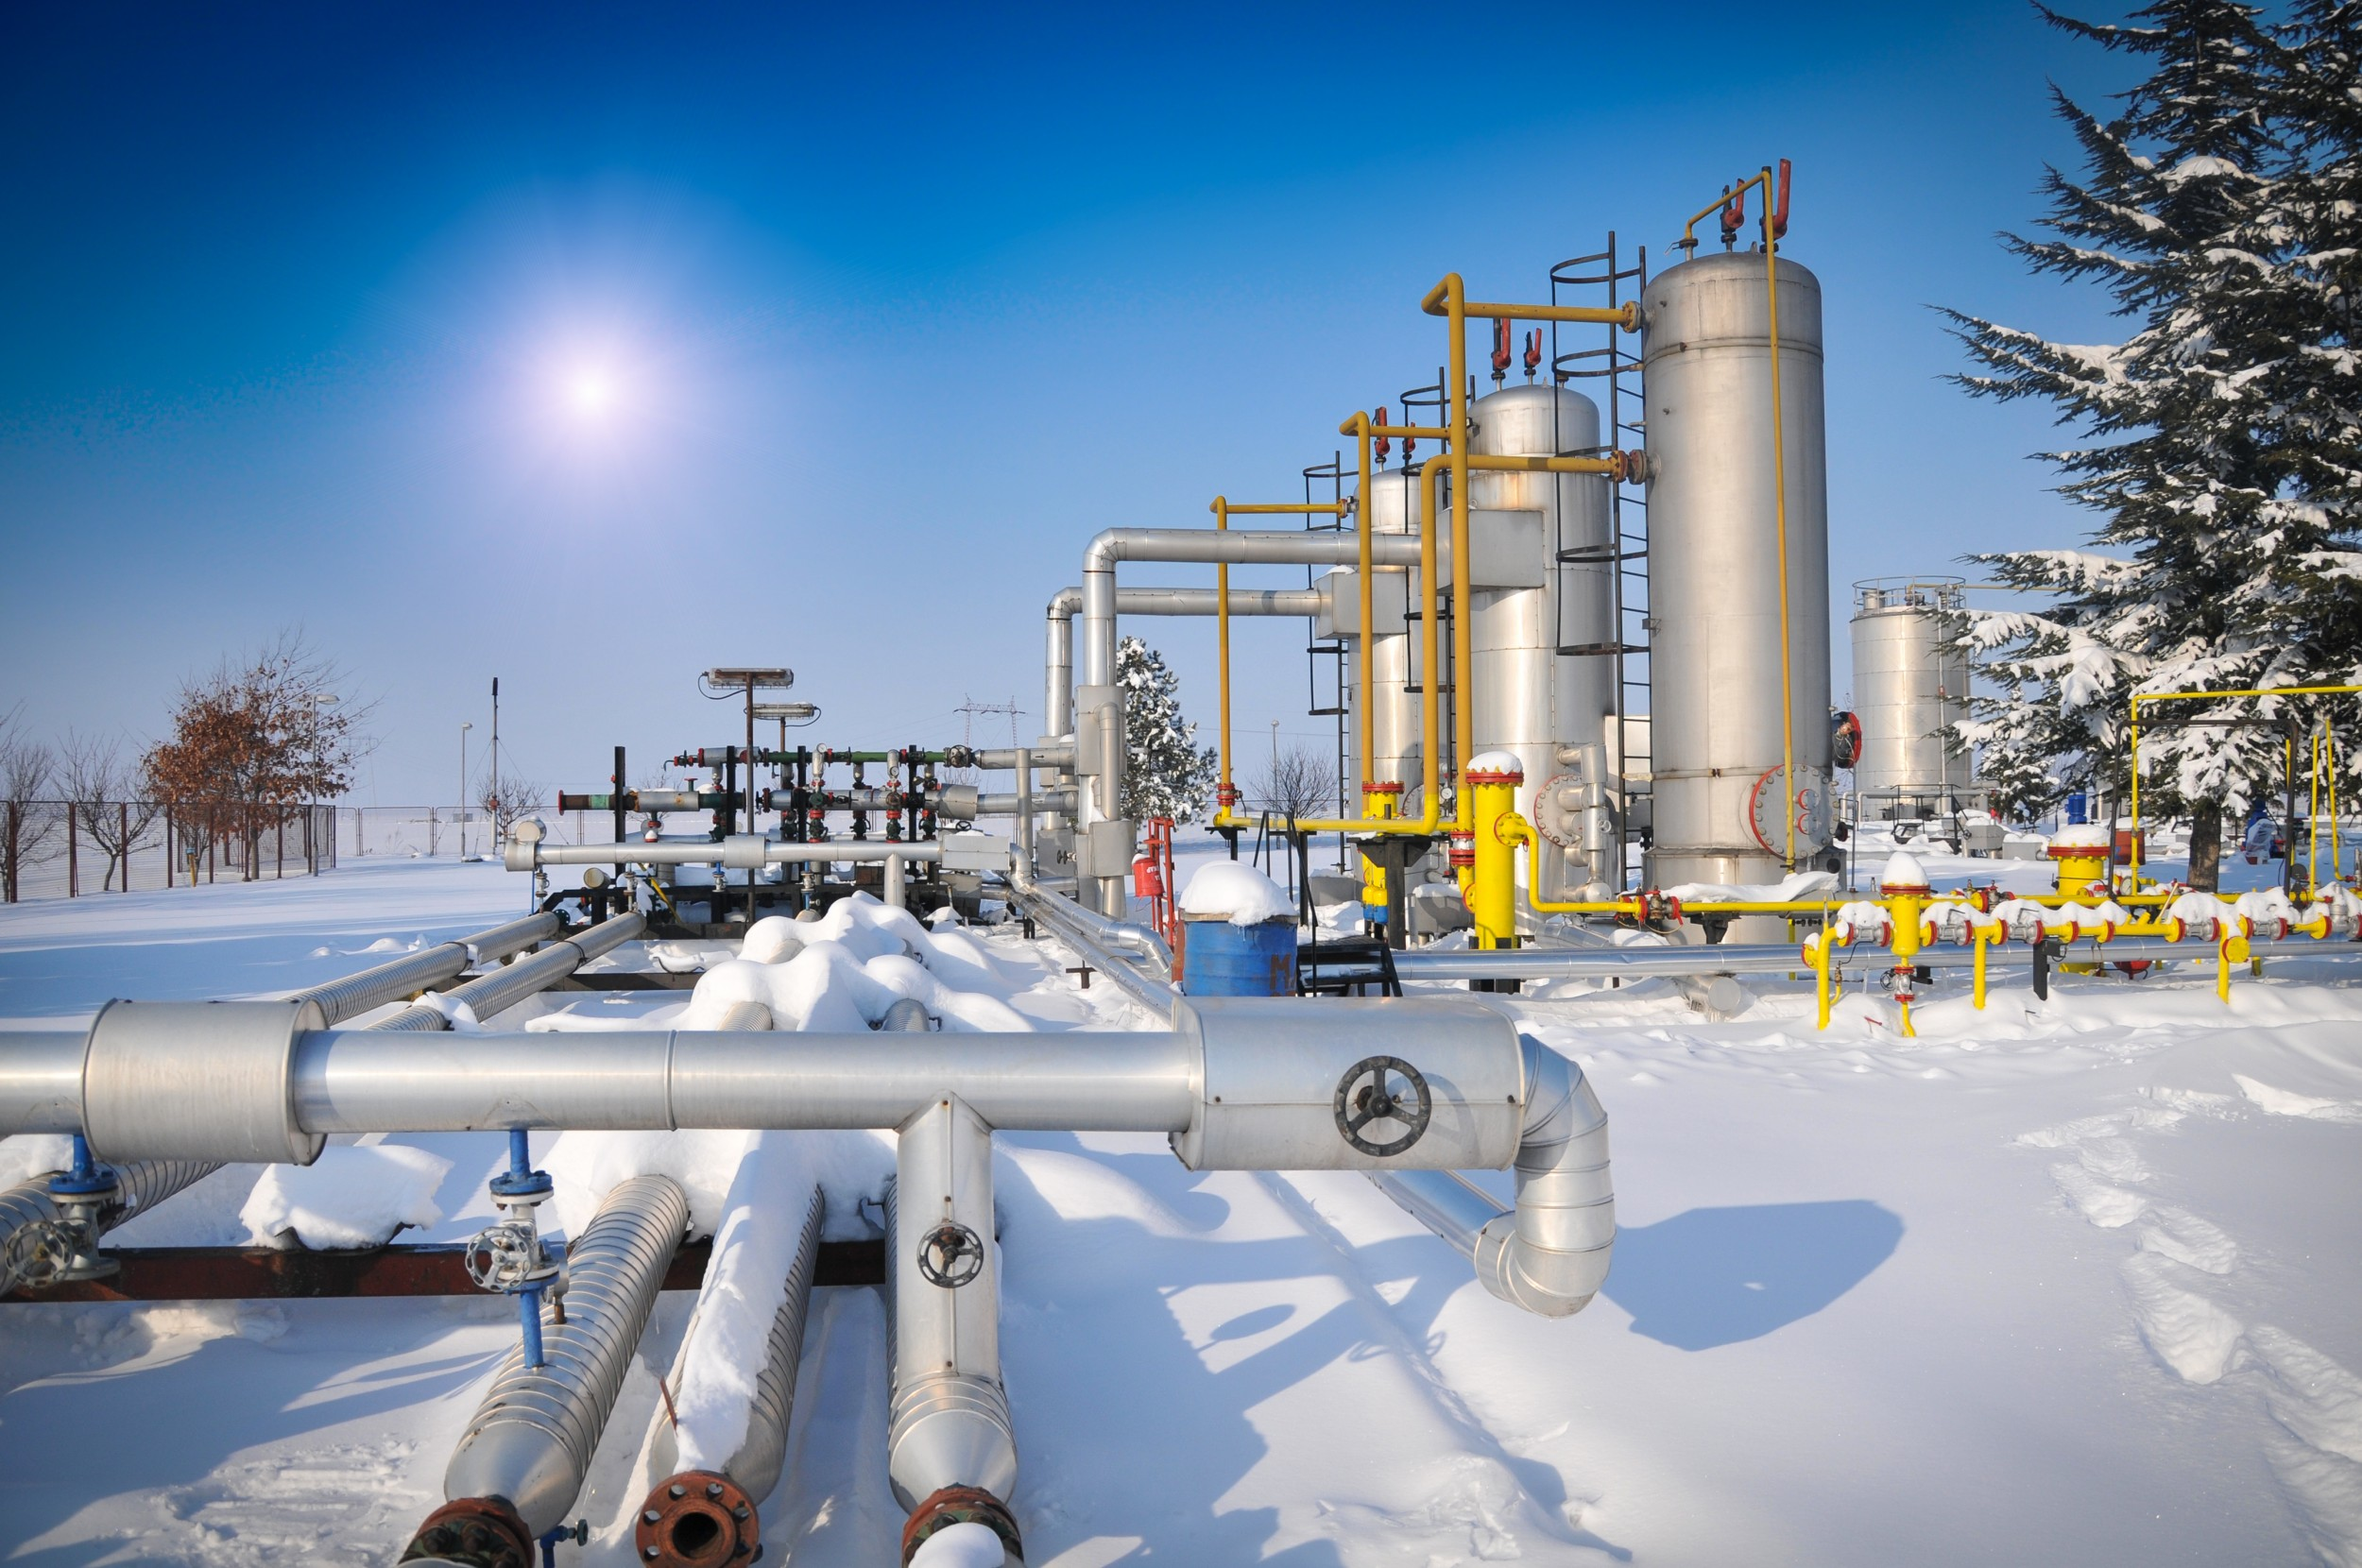 The Swiss gas network is well developed and suitable for the transportation of synthetic methane. But for this to happen, production must become more energy- and cost-efficient.